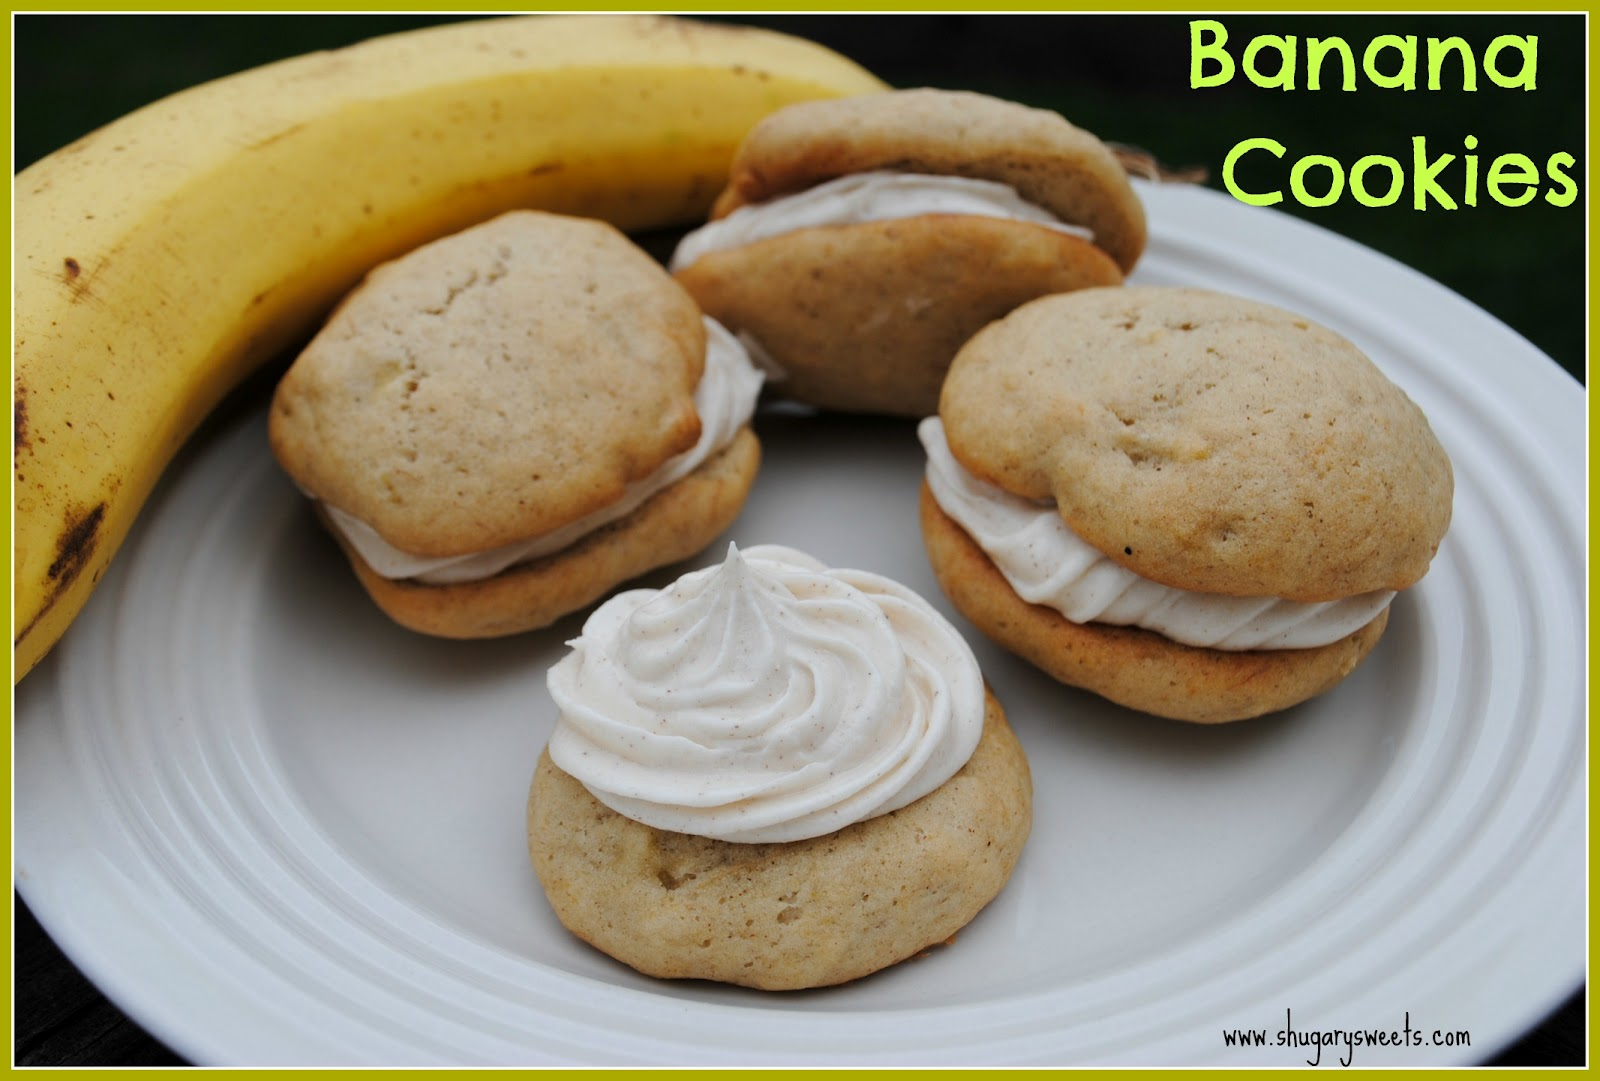 Banana Cookies - Shugary Sweets